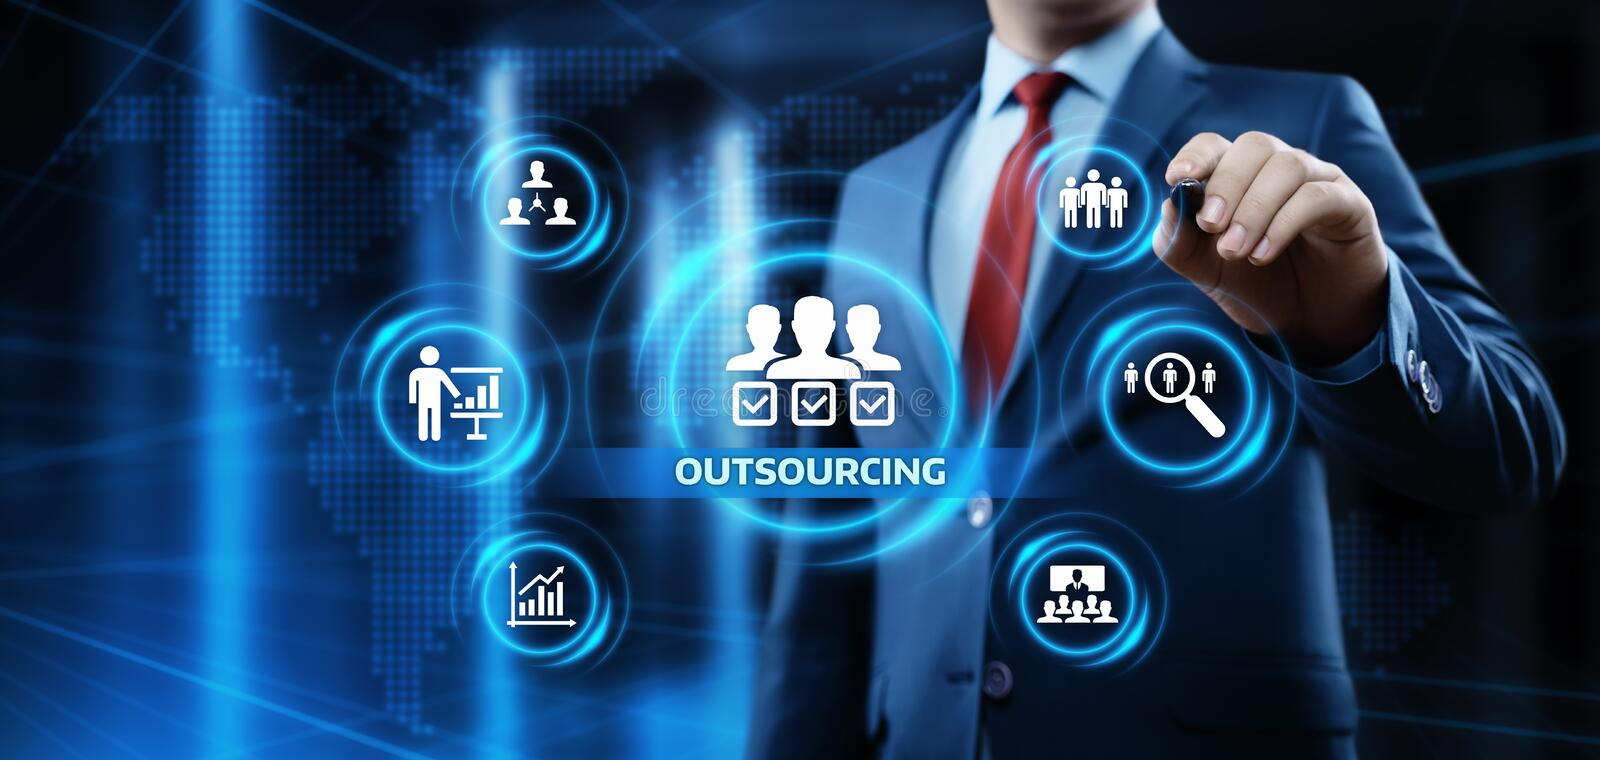 Outsourcing Human Resources Business Internet Technology Concept.  royalty free stock photography